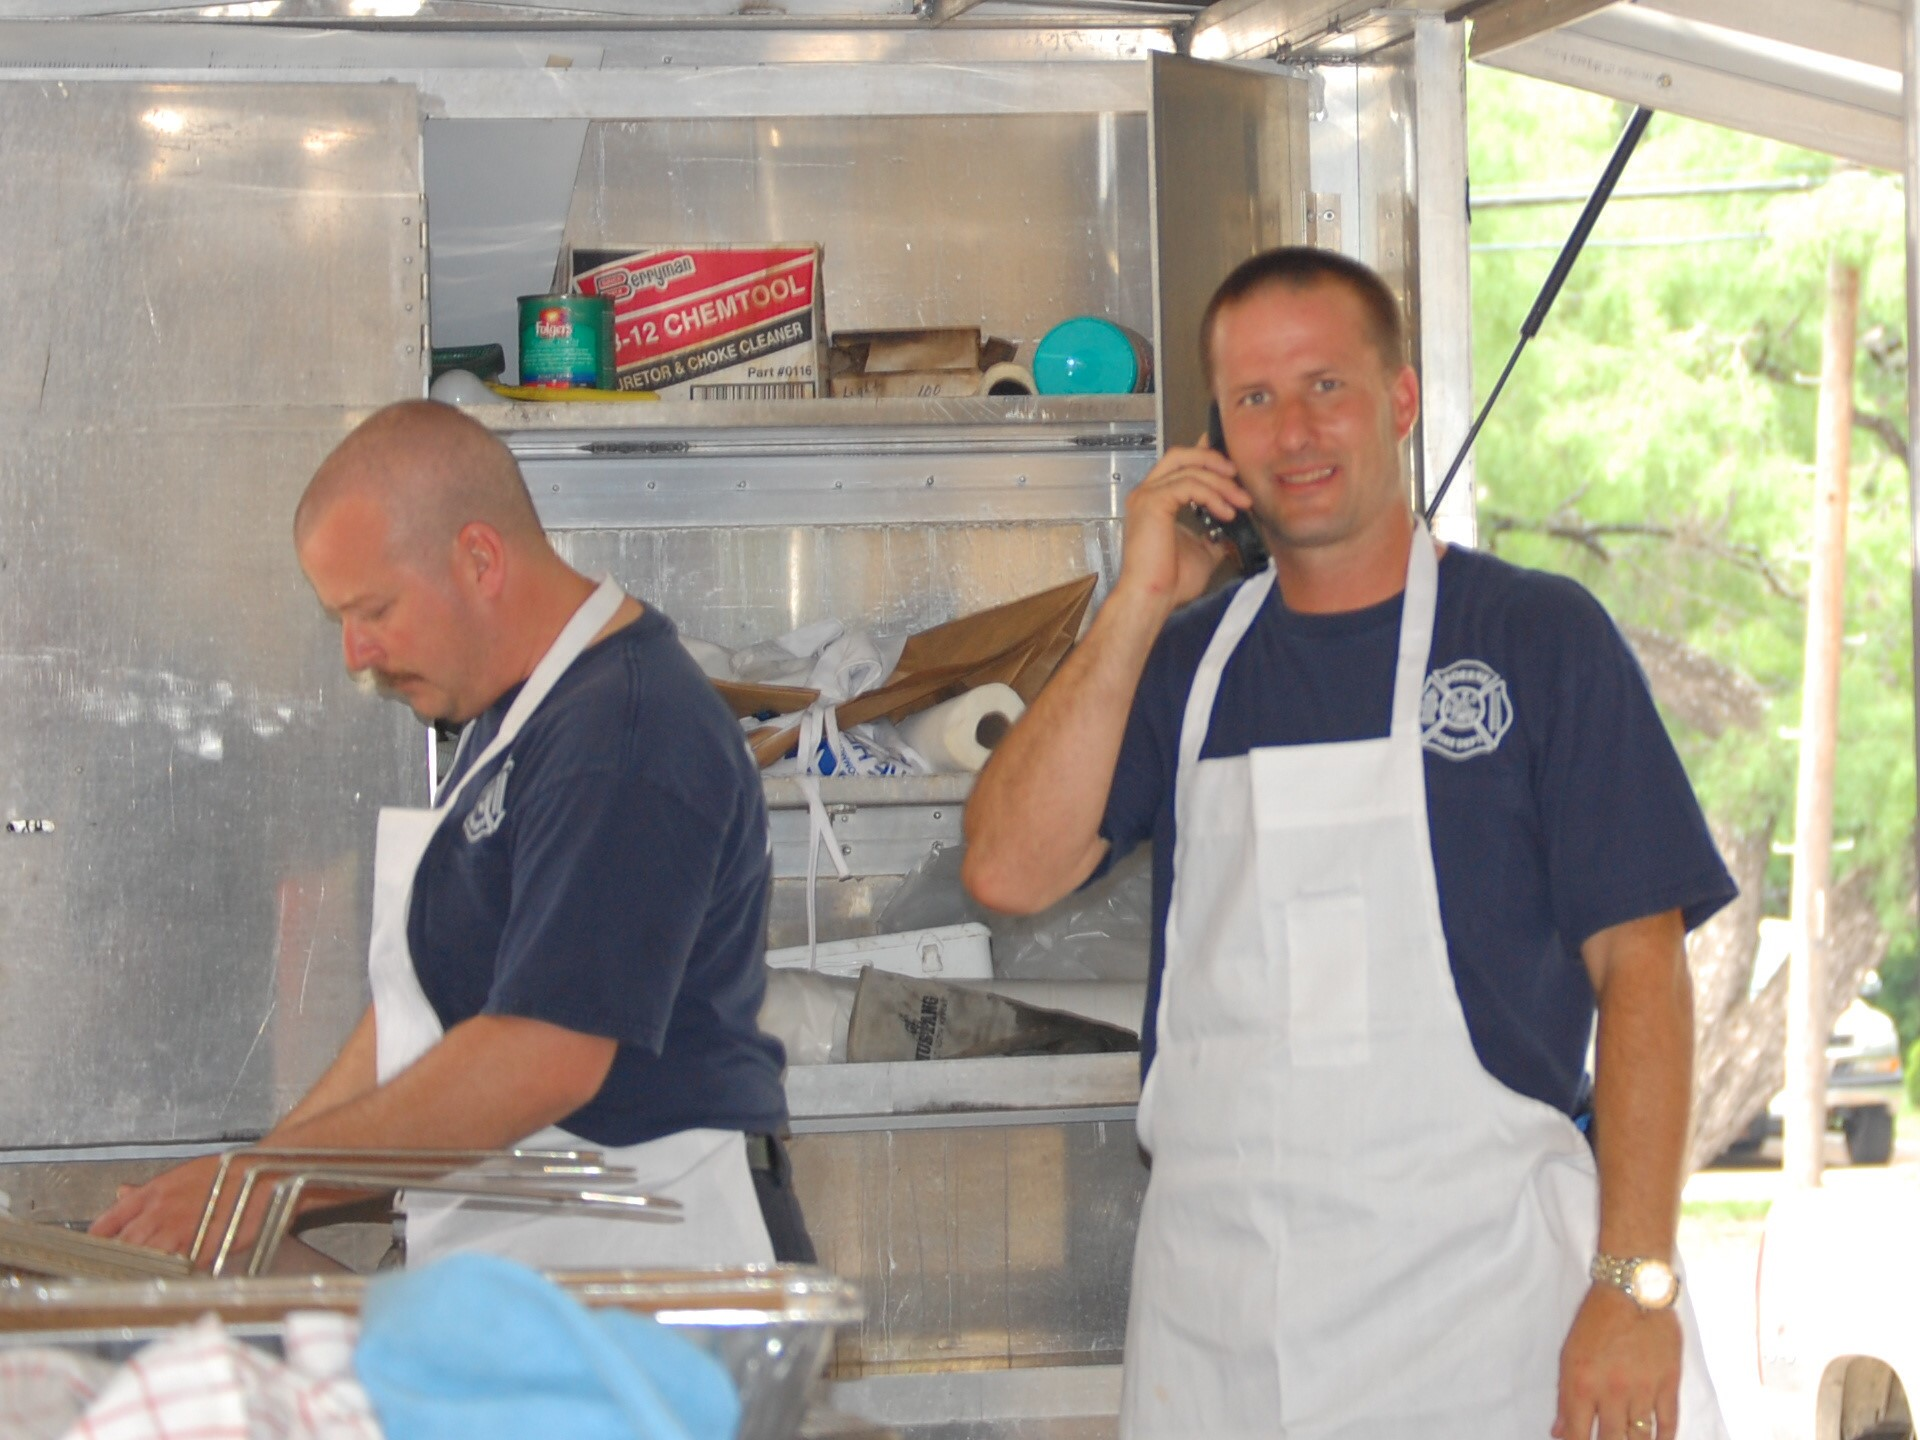 Photo of frying fish at the Dinner and Dance fundraiser